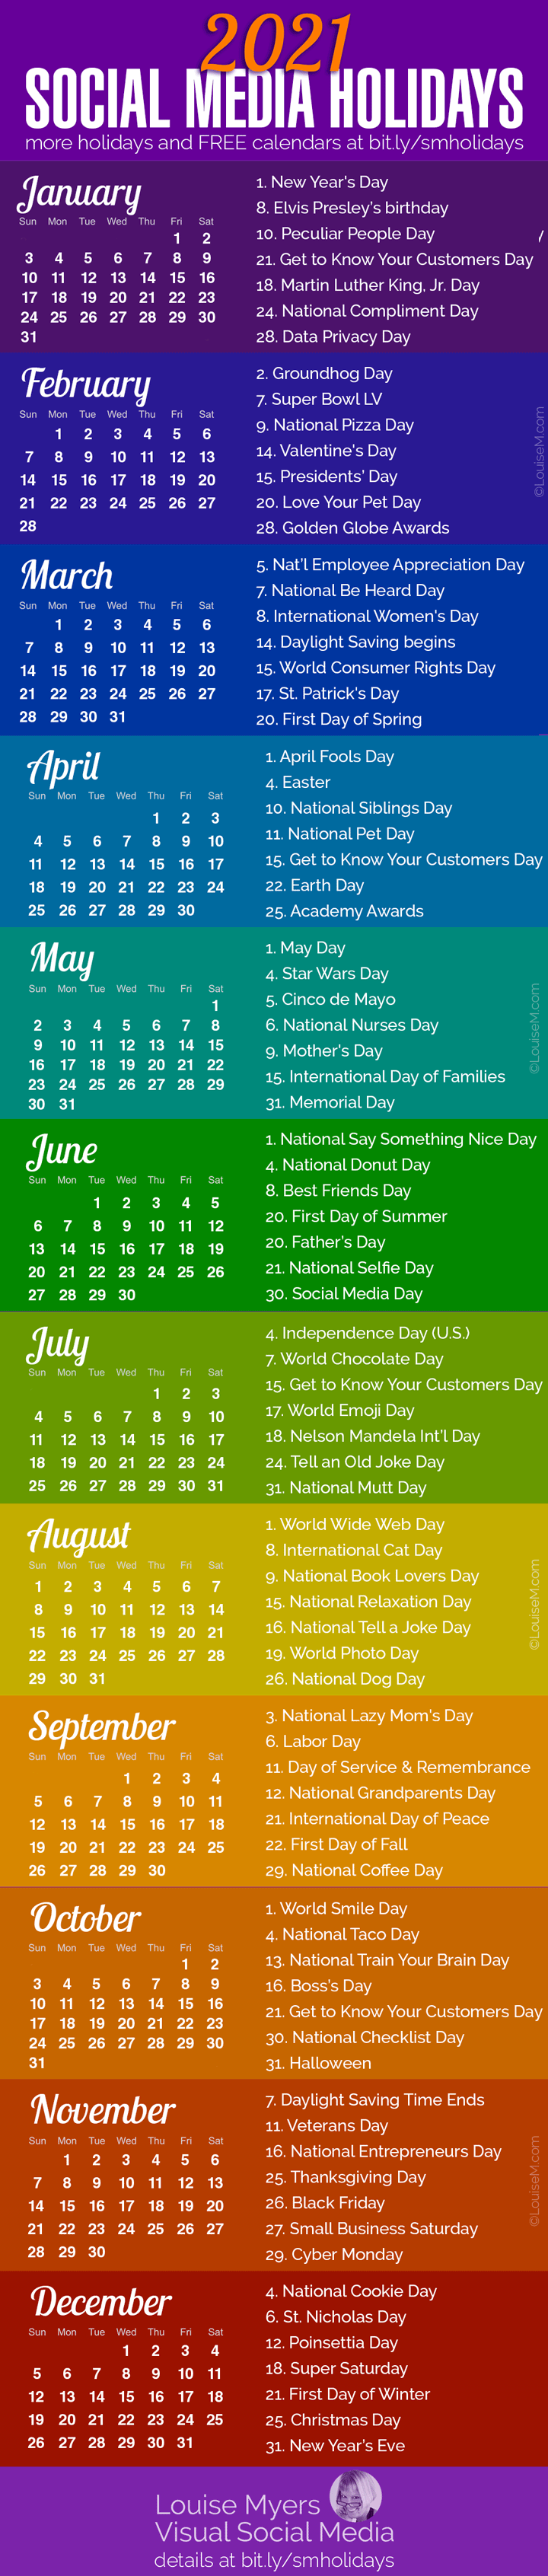 100+ Social Media Holidays You Need in 2020 21: Indispensable!